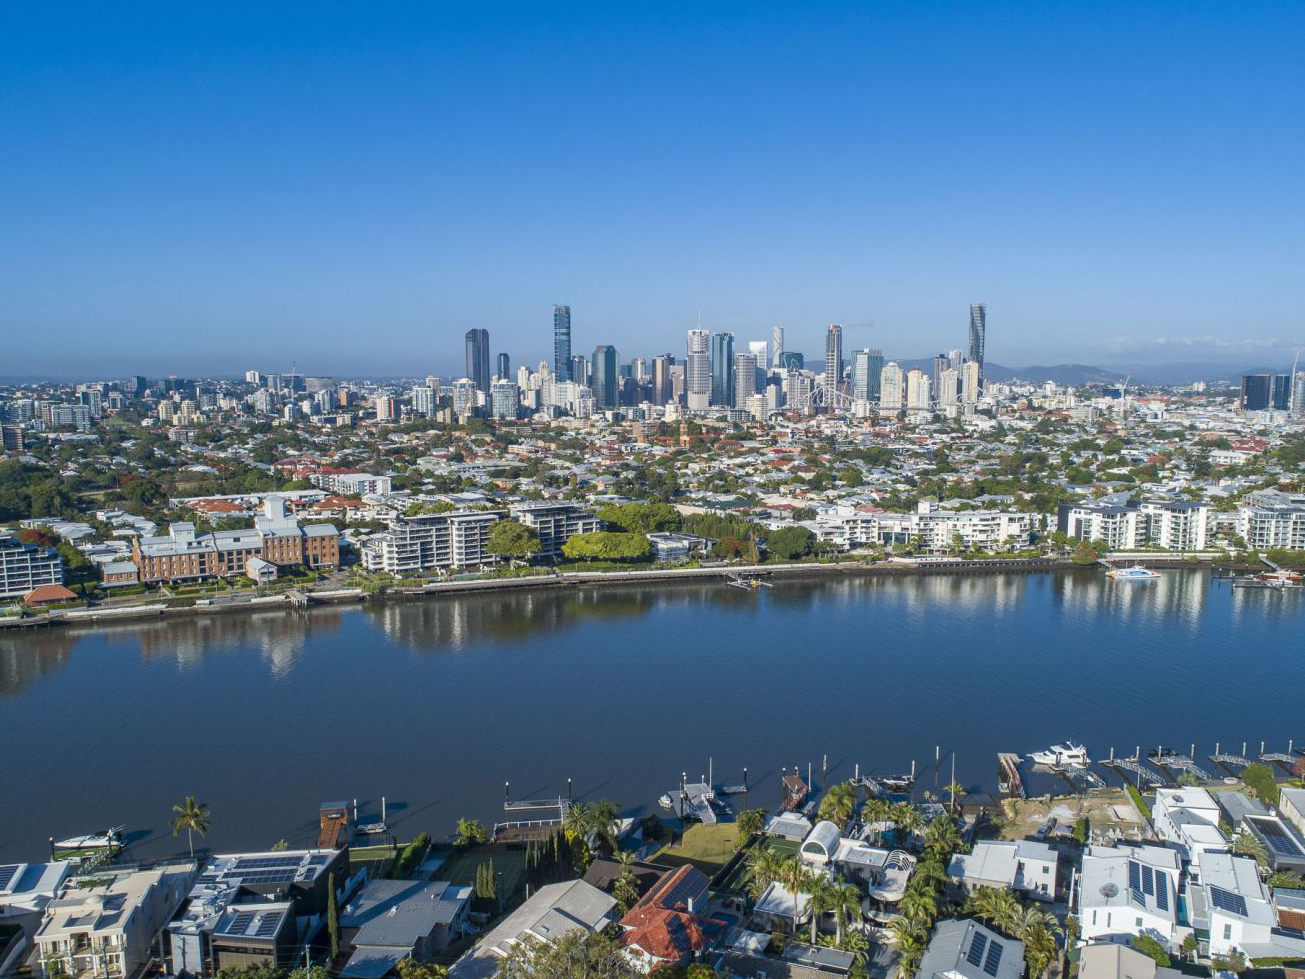 An aerial view of Hawthorne in Brisbane. Low res